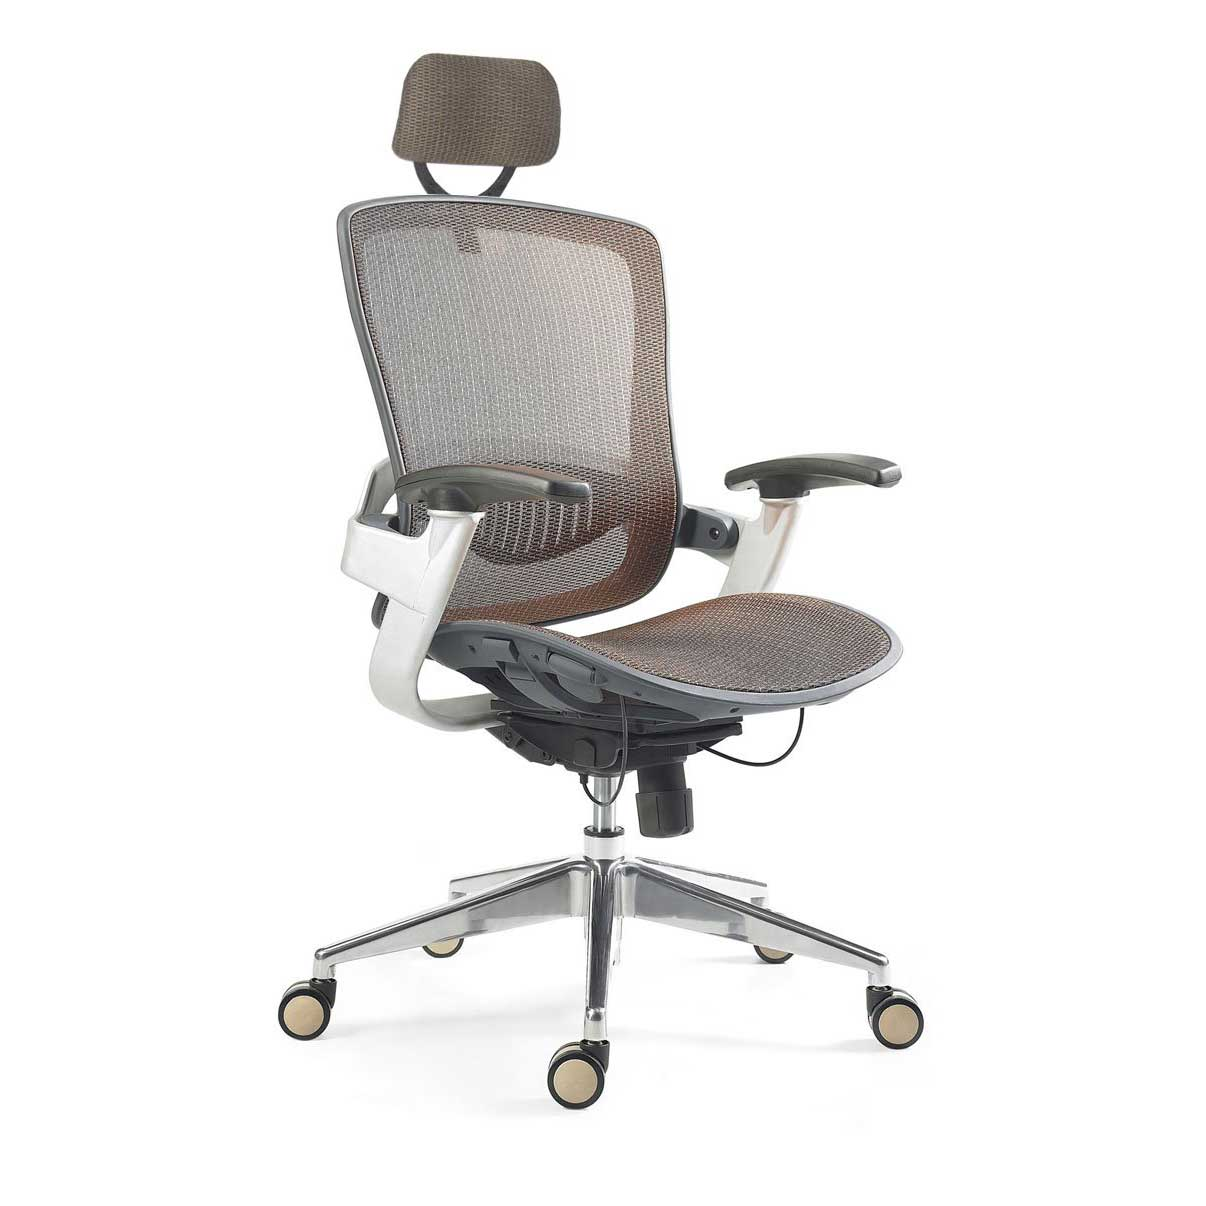 Ergonomic Chairs For Home Mesh Computer Chairs For Home Office Interior